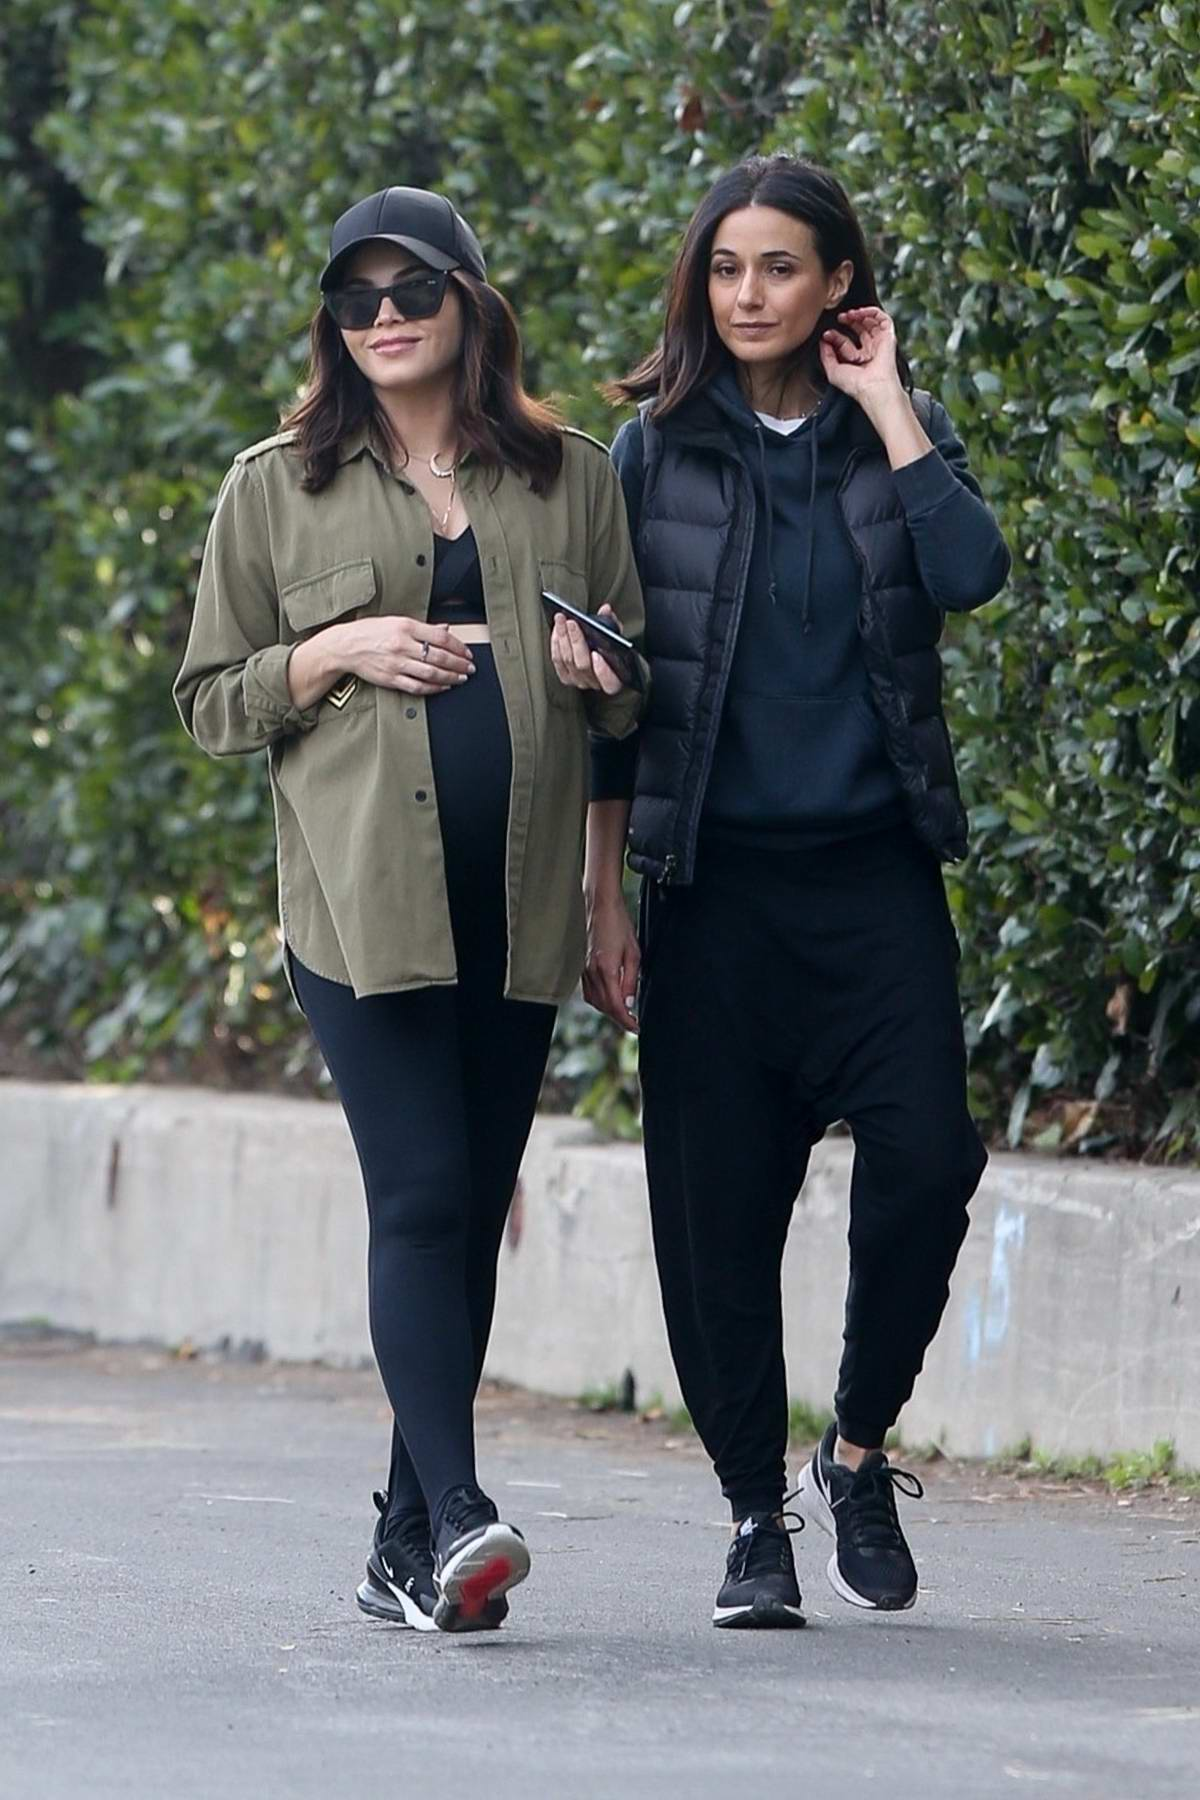 Jenna Dewan and Emmanuelle Chriqui step out for an afternoon hike in Los Angeles